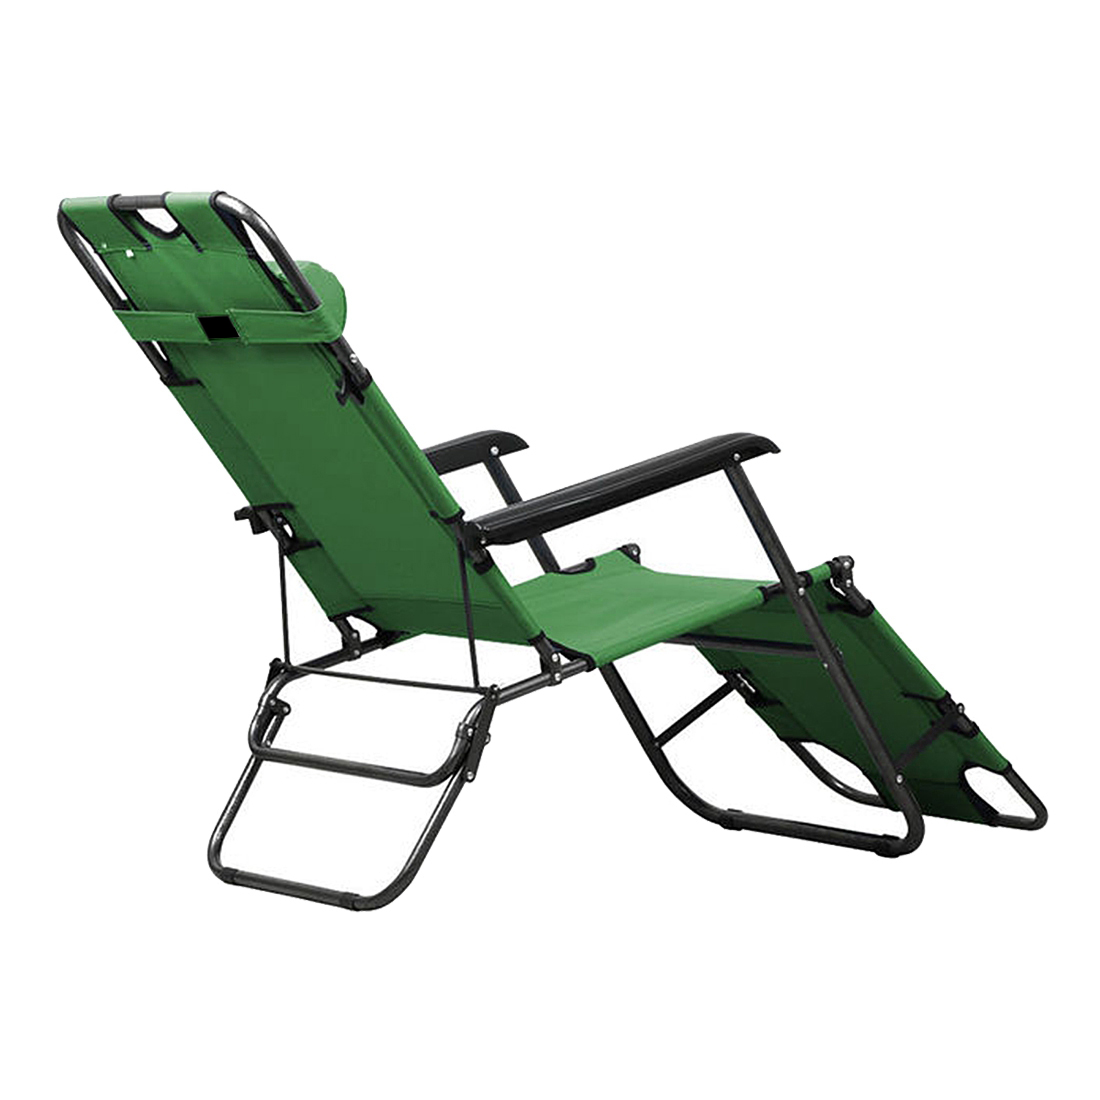 metal folding chaise lounge chair patio outdoor pool beach lawn recliner new color army green. Black Bedroom Furniture Sets. Home Design Ideas